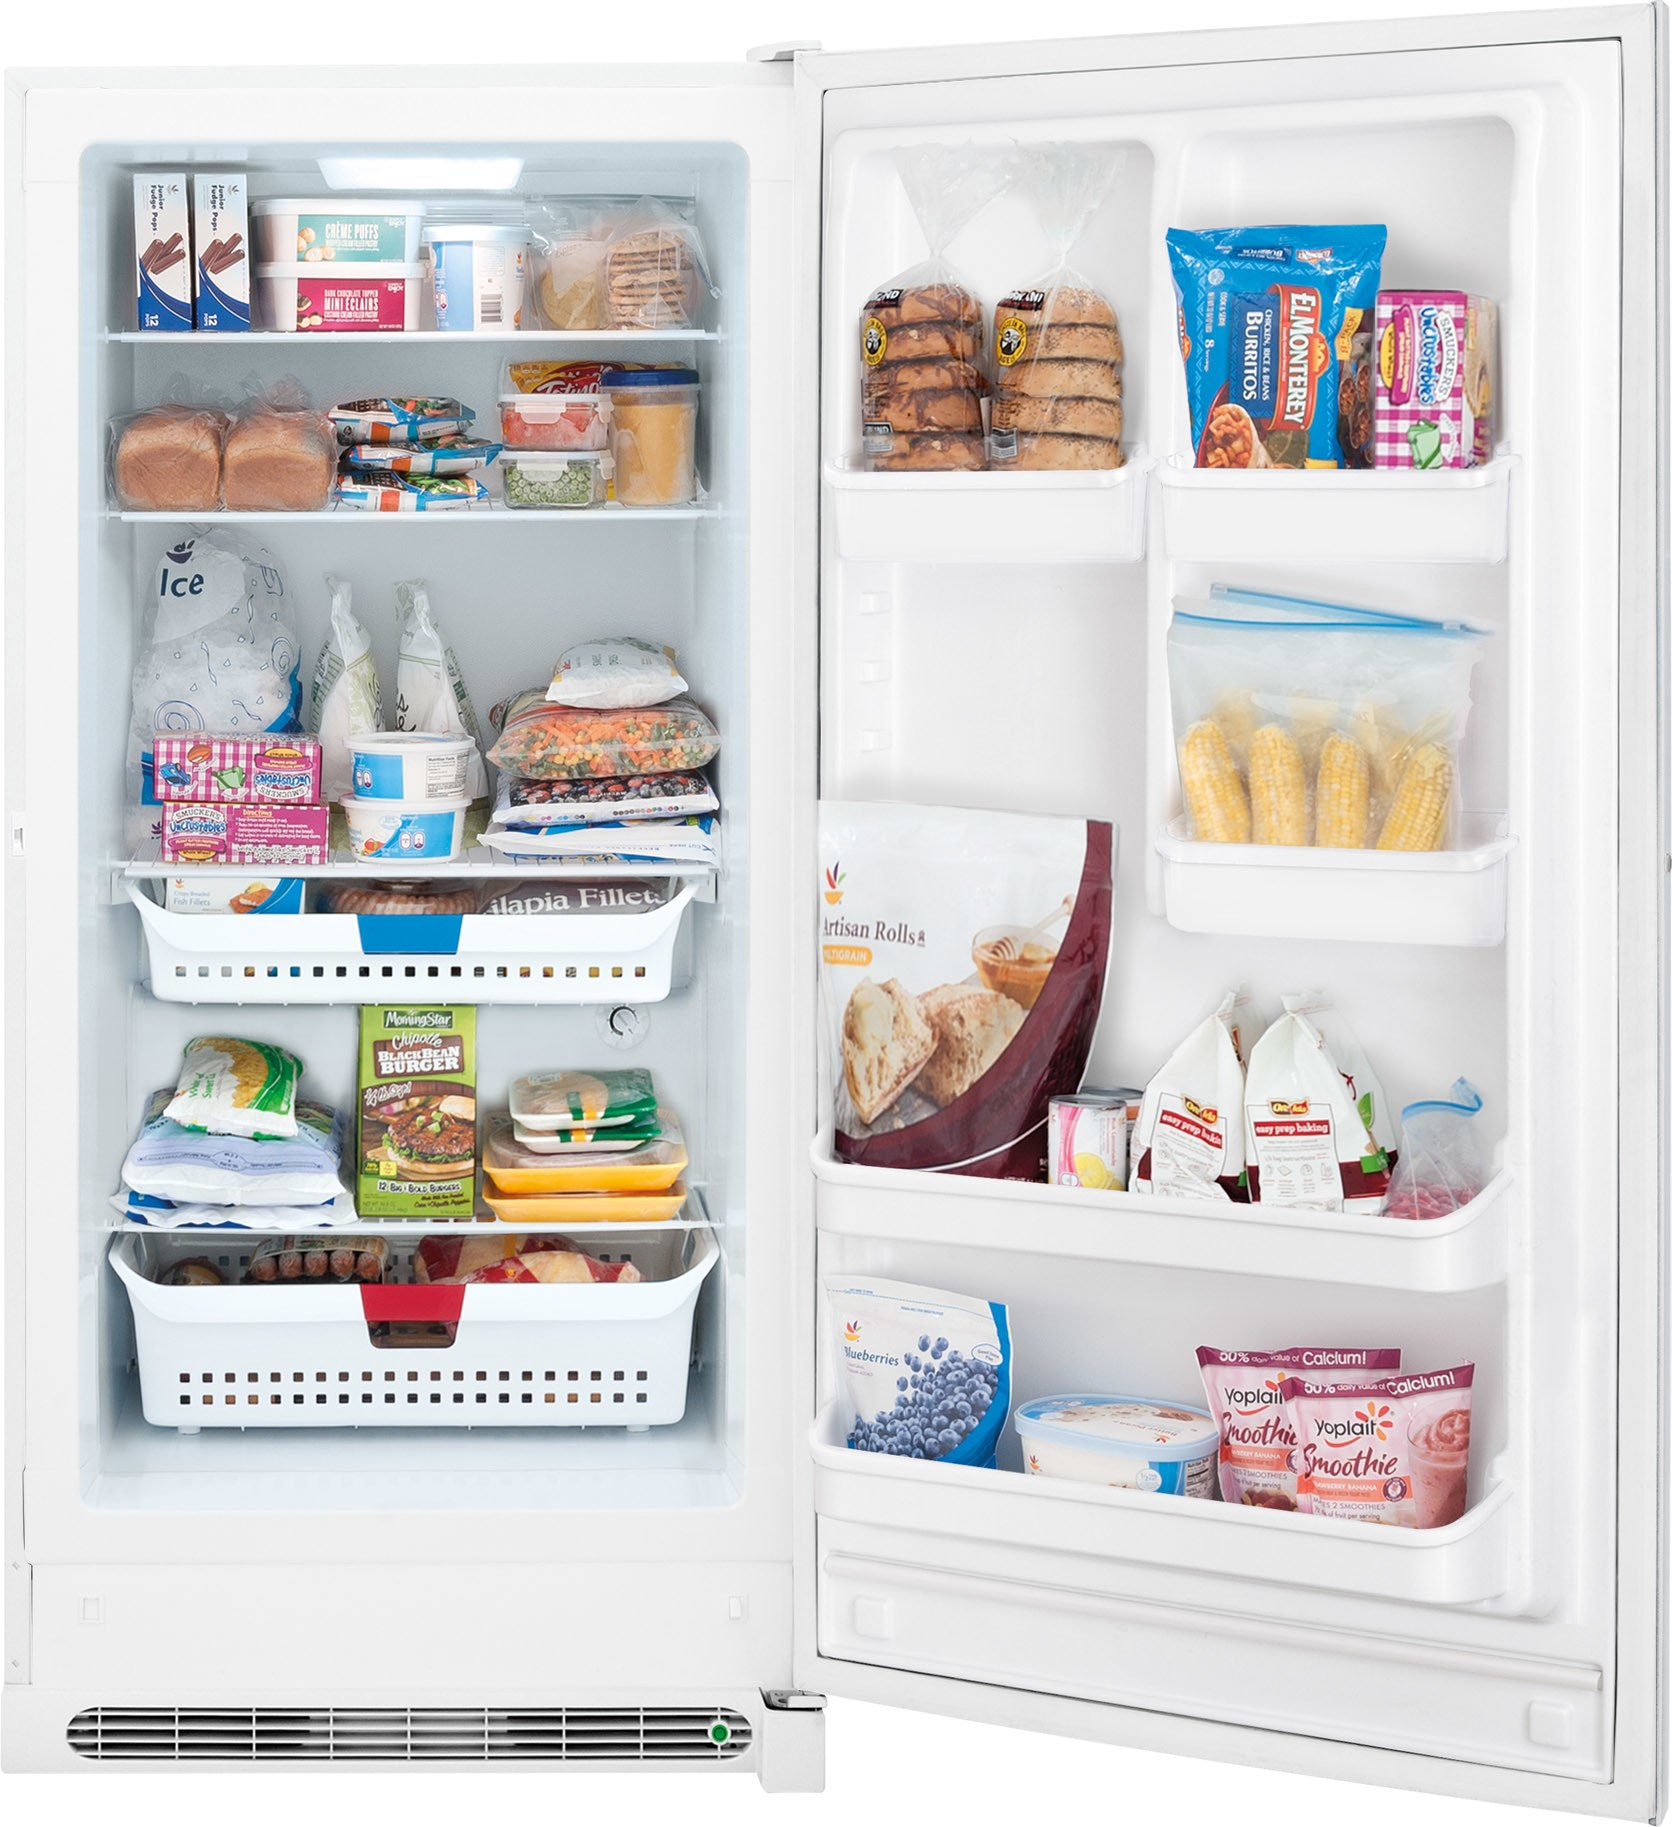 Model: FFFH17F4QW | 16.6 Cu. Ft. Upright Freezer